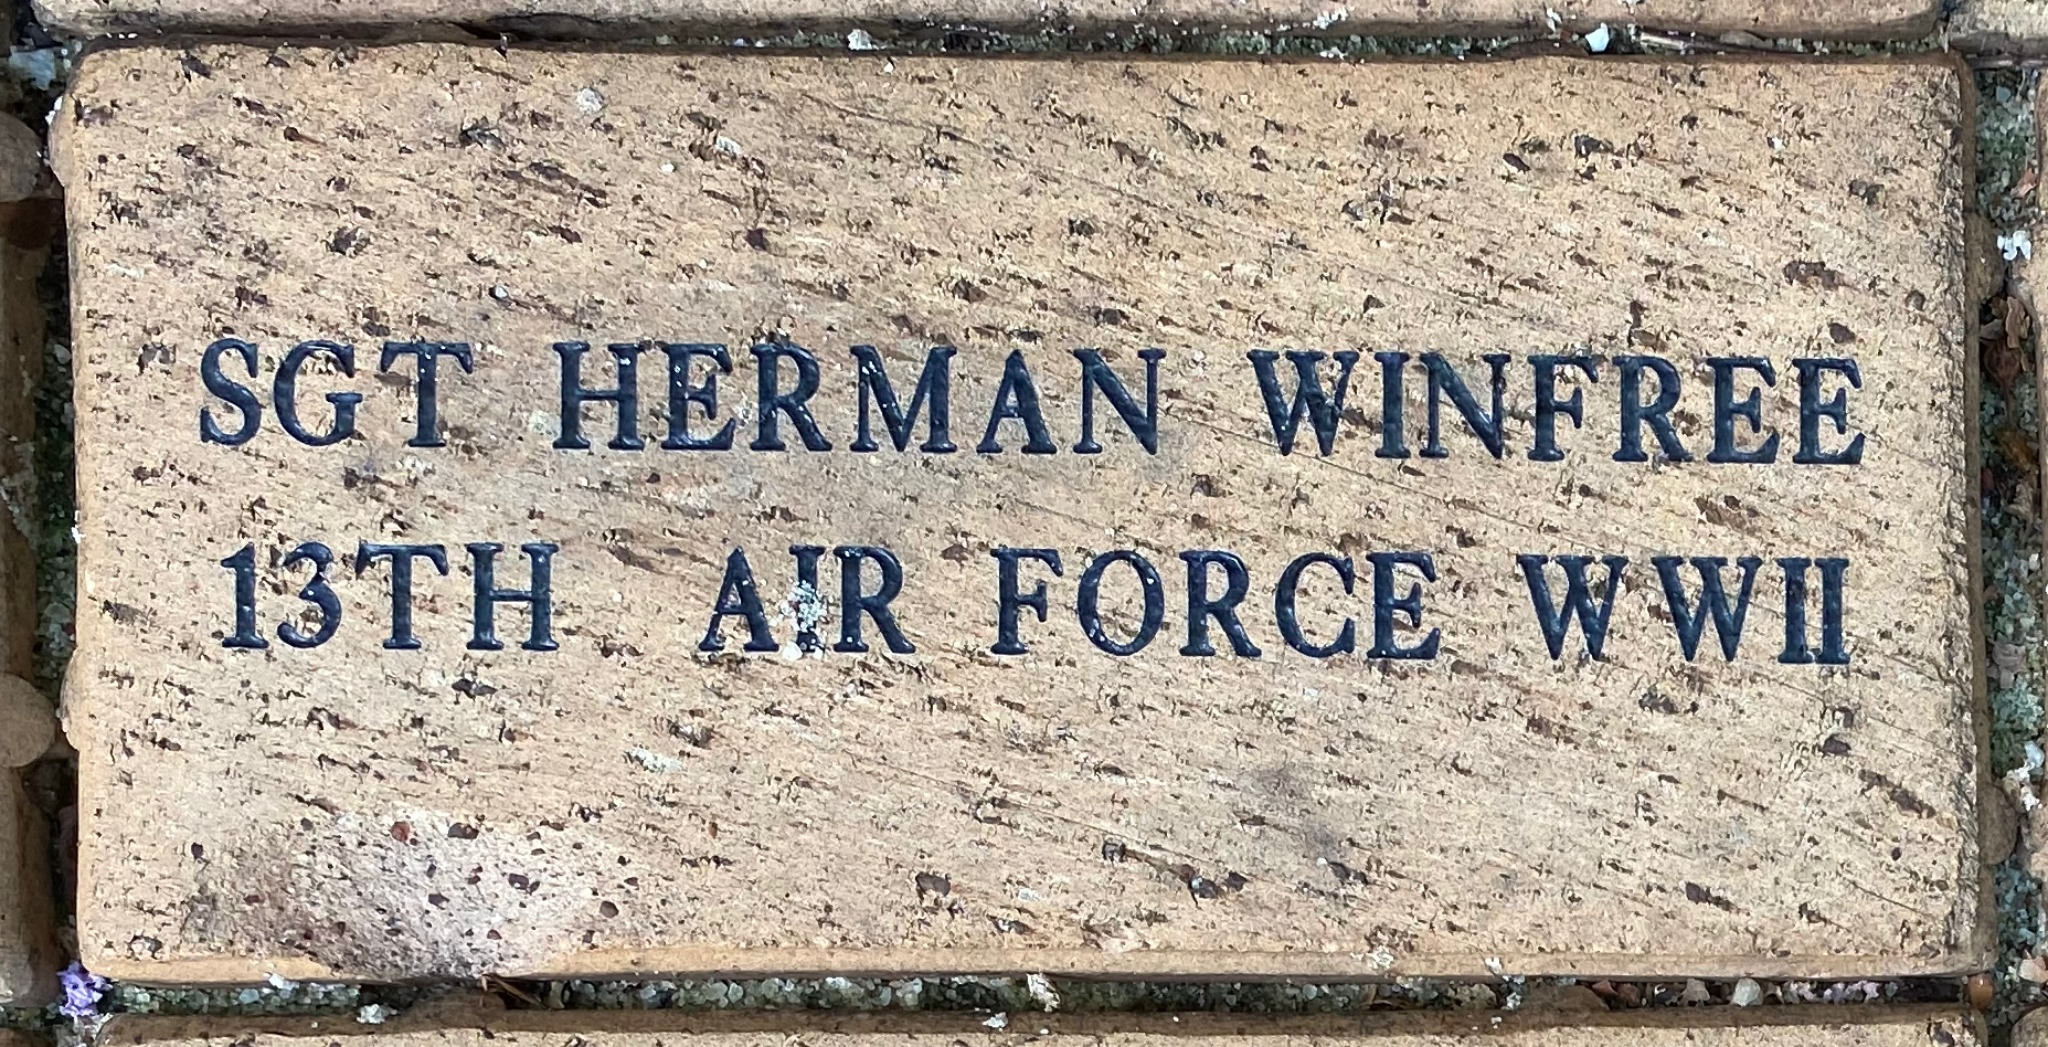 SGT. HERMAN WINFREE 13TH AIR FORCE WWII